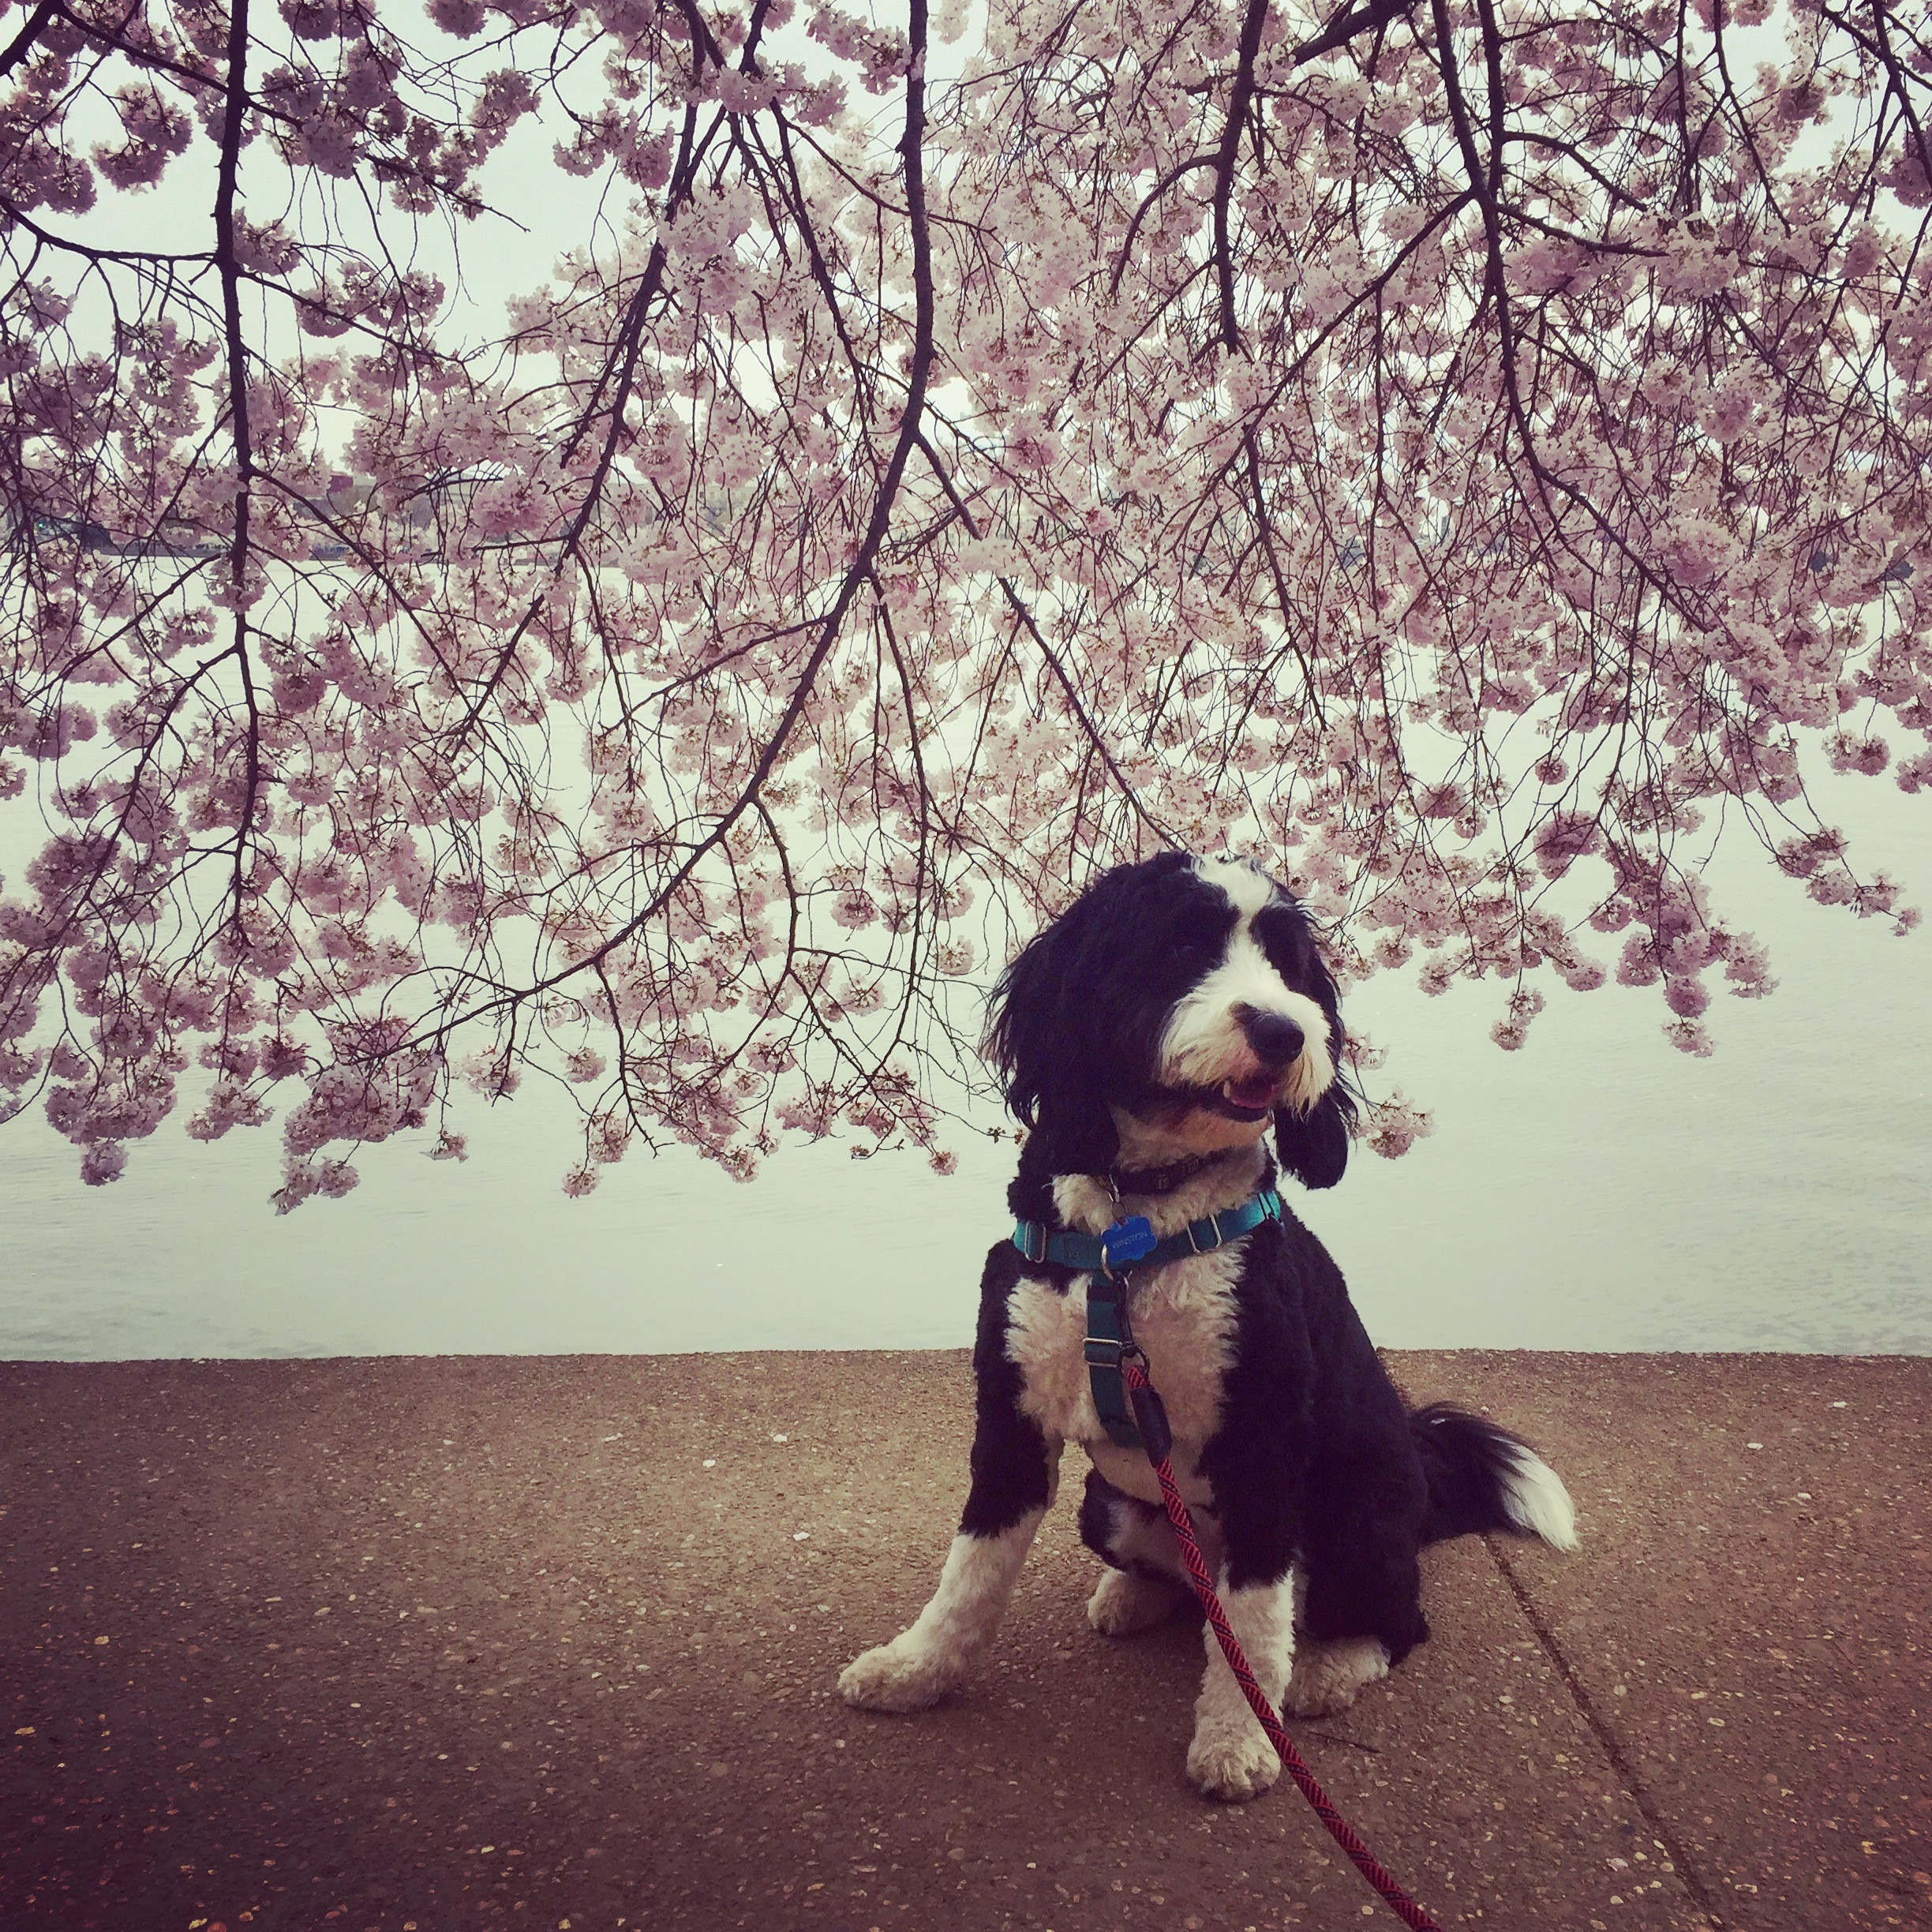 In honor of National Pet Day (which is basically like Christmas around here!) we checked in on a few of our favorite Instagram stars to see what they've been up to lately, and we noticed many of them had paid a visit to D.C.'s beloved blossoms. So for this week's special RUFFined Spotlight, we give you some adorable four-legged admirers of the cherry blossoms! (Image: via IG user @winstononwilson /{ }instagram.com/winstononwilson/){ }